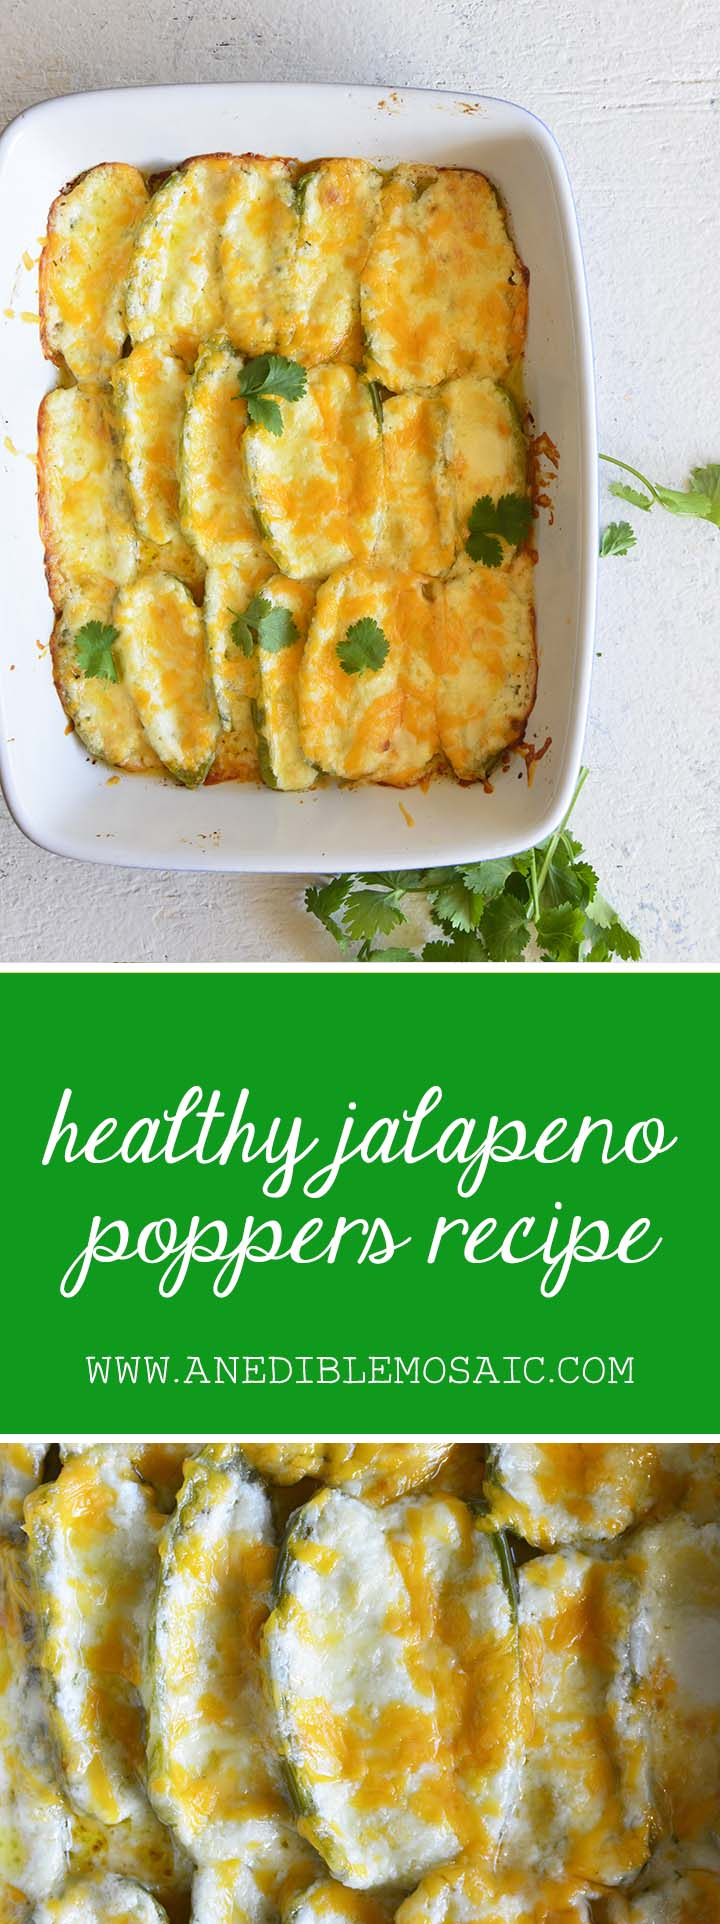 Healthy Jalapeno Poppers Recipe Pin